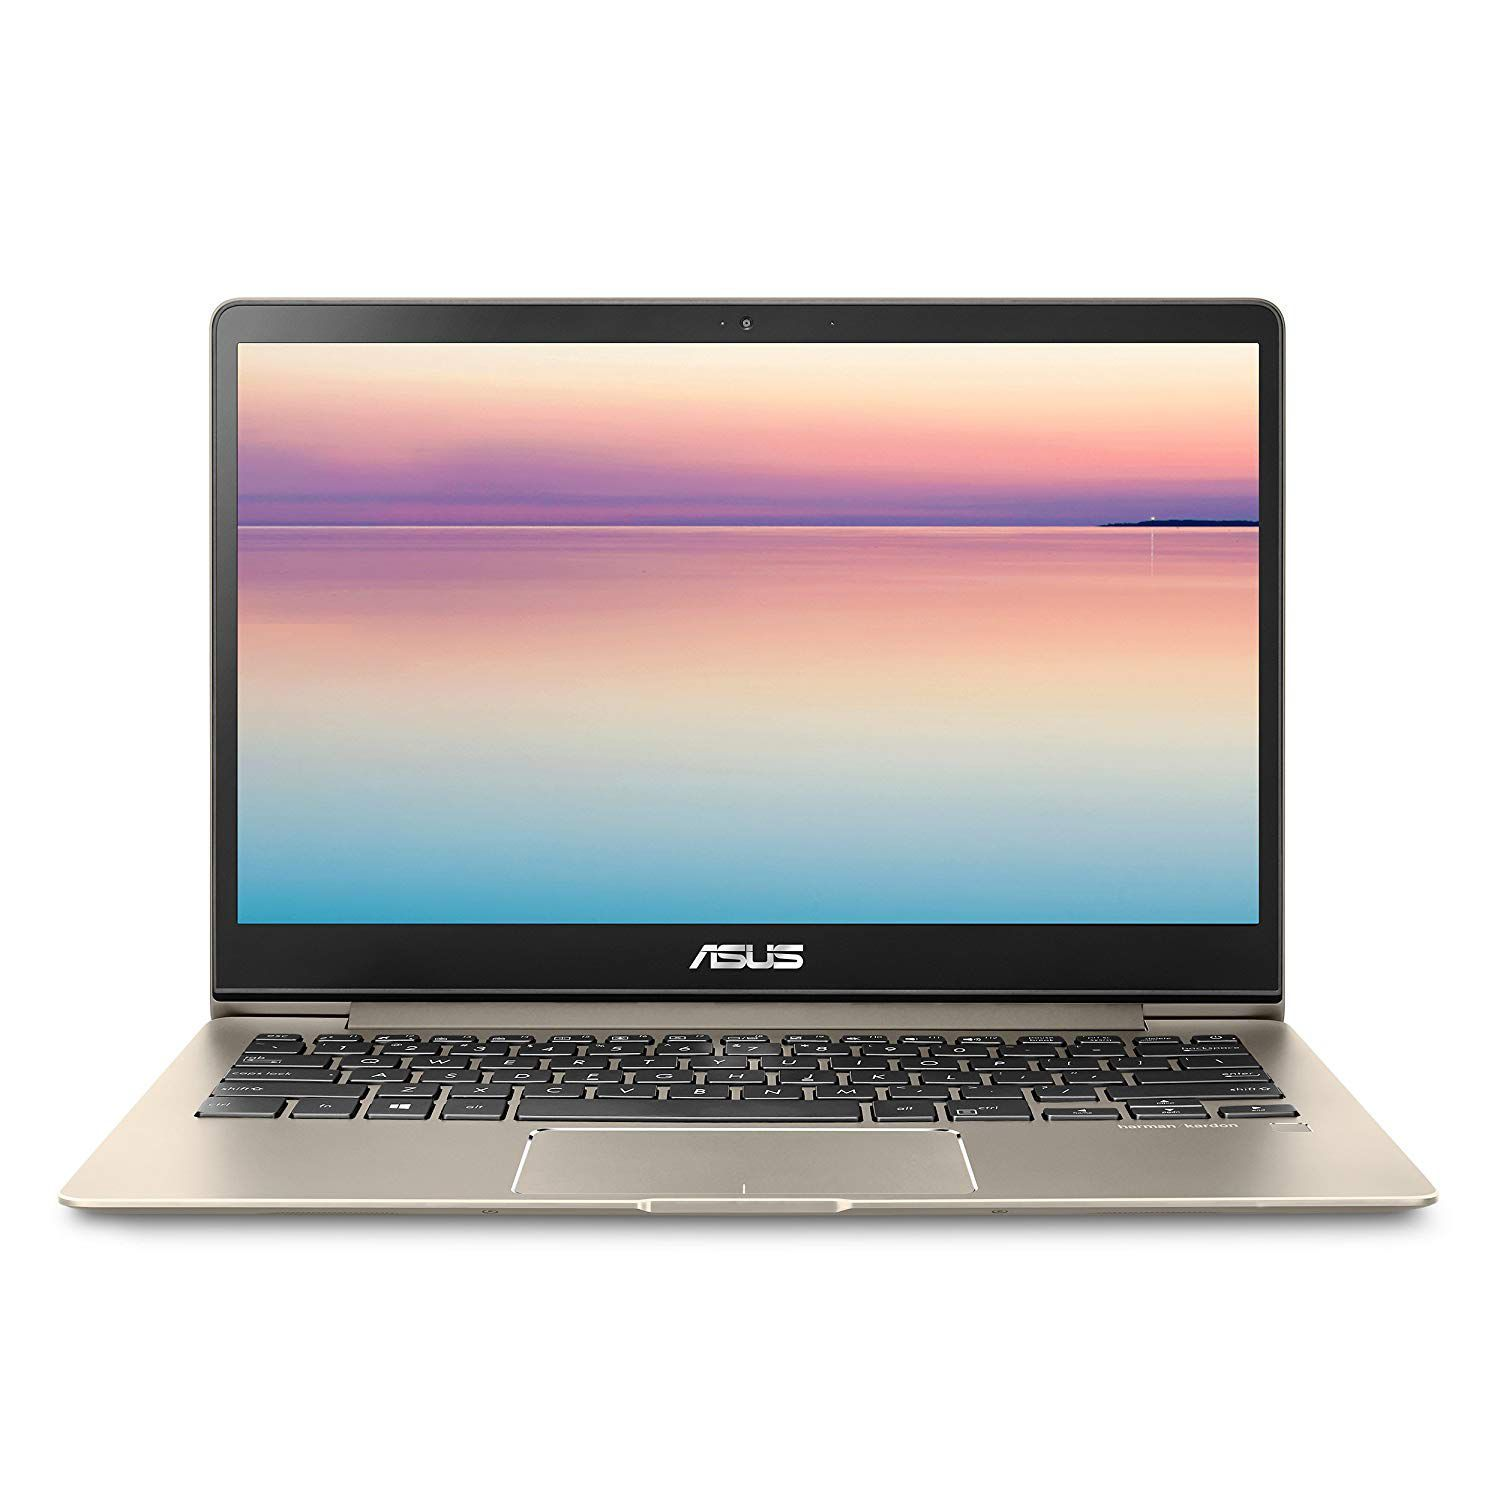 Kleines Laptop Asus Zenbook 13 Mini Laptop